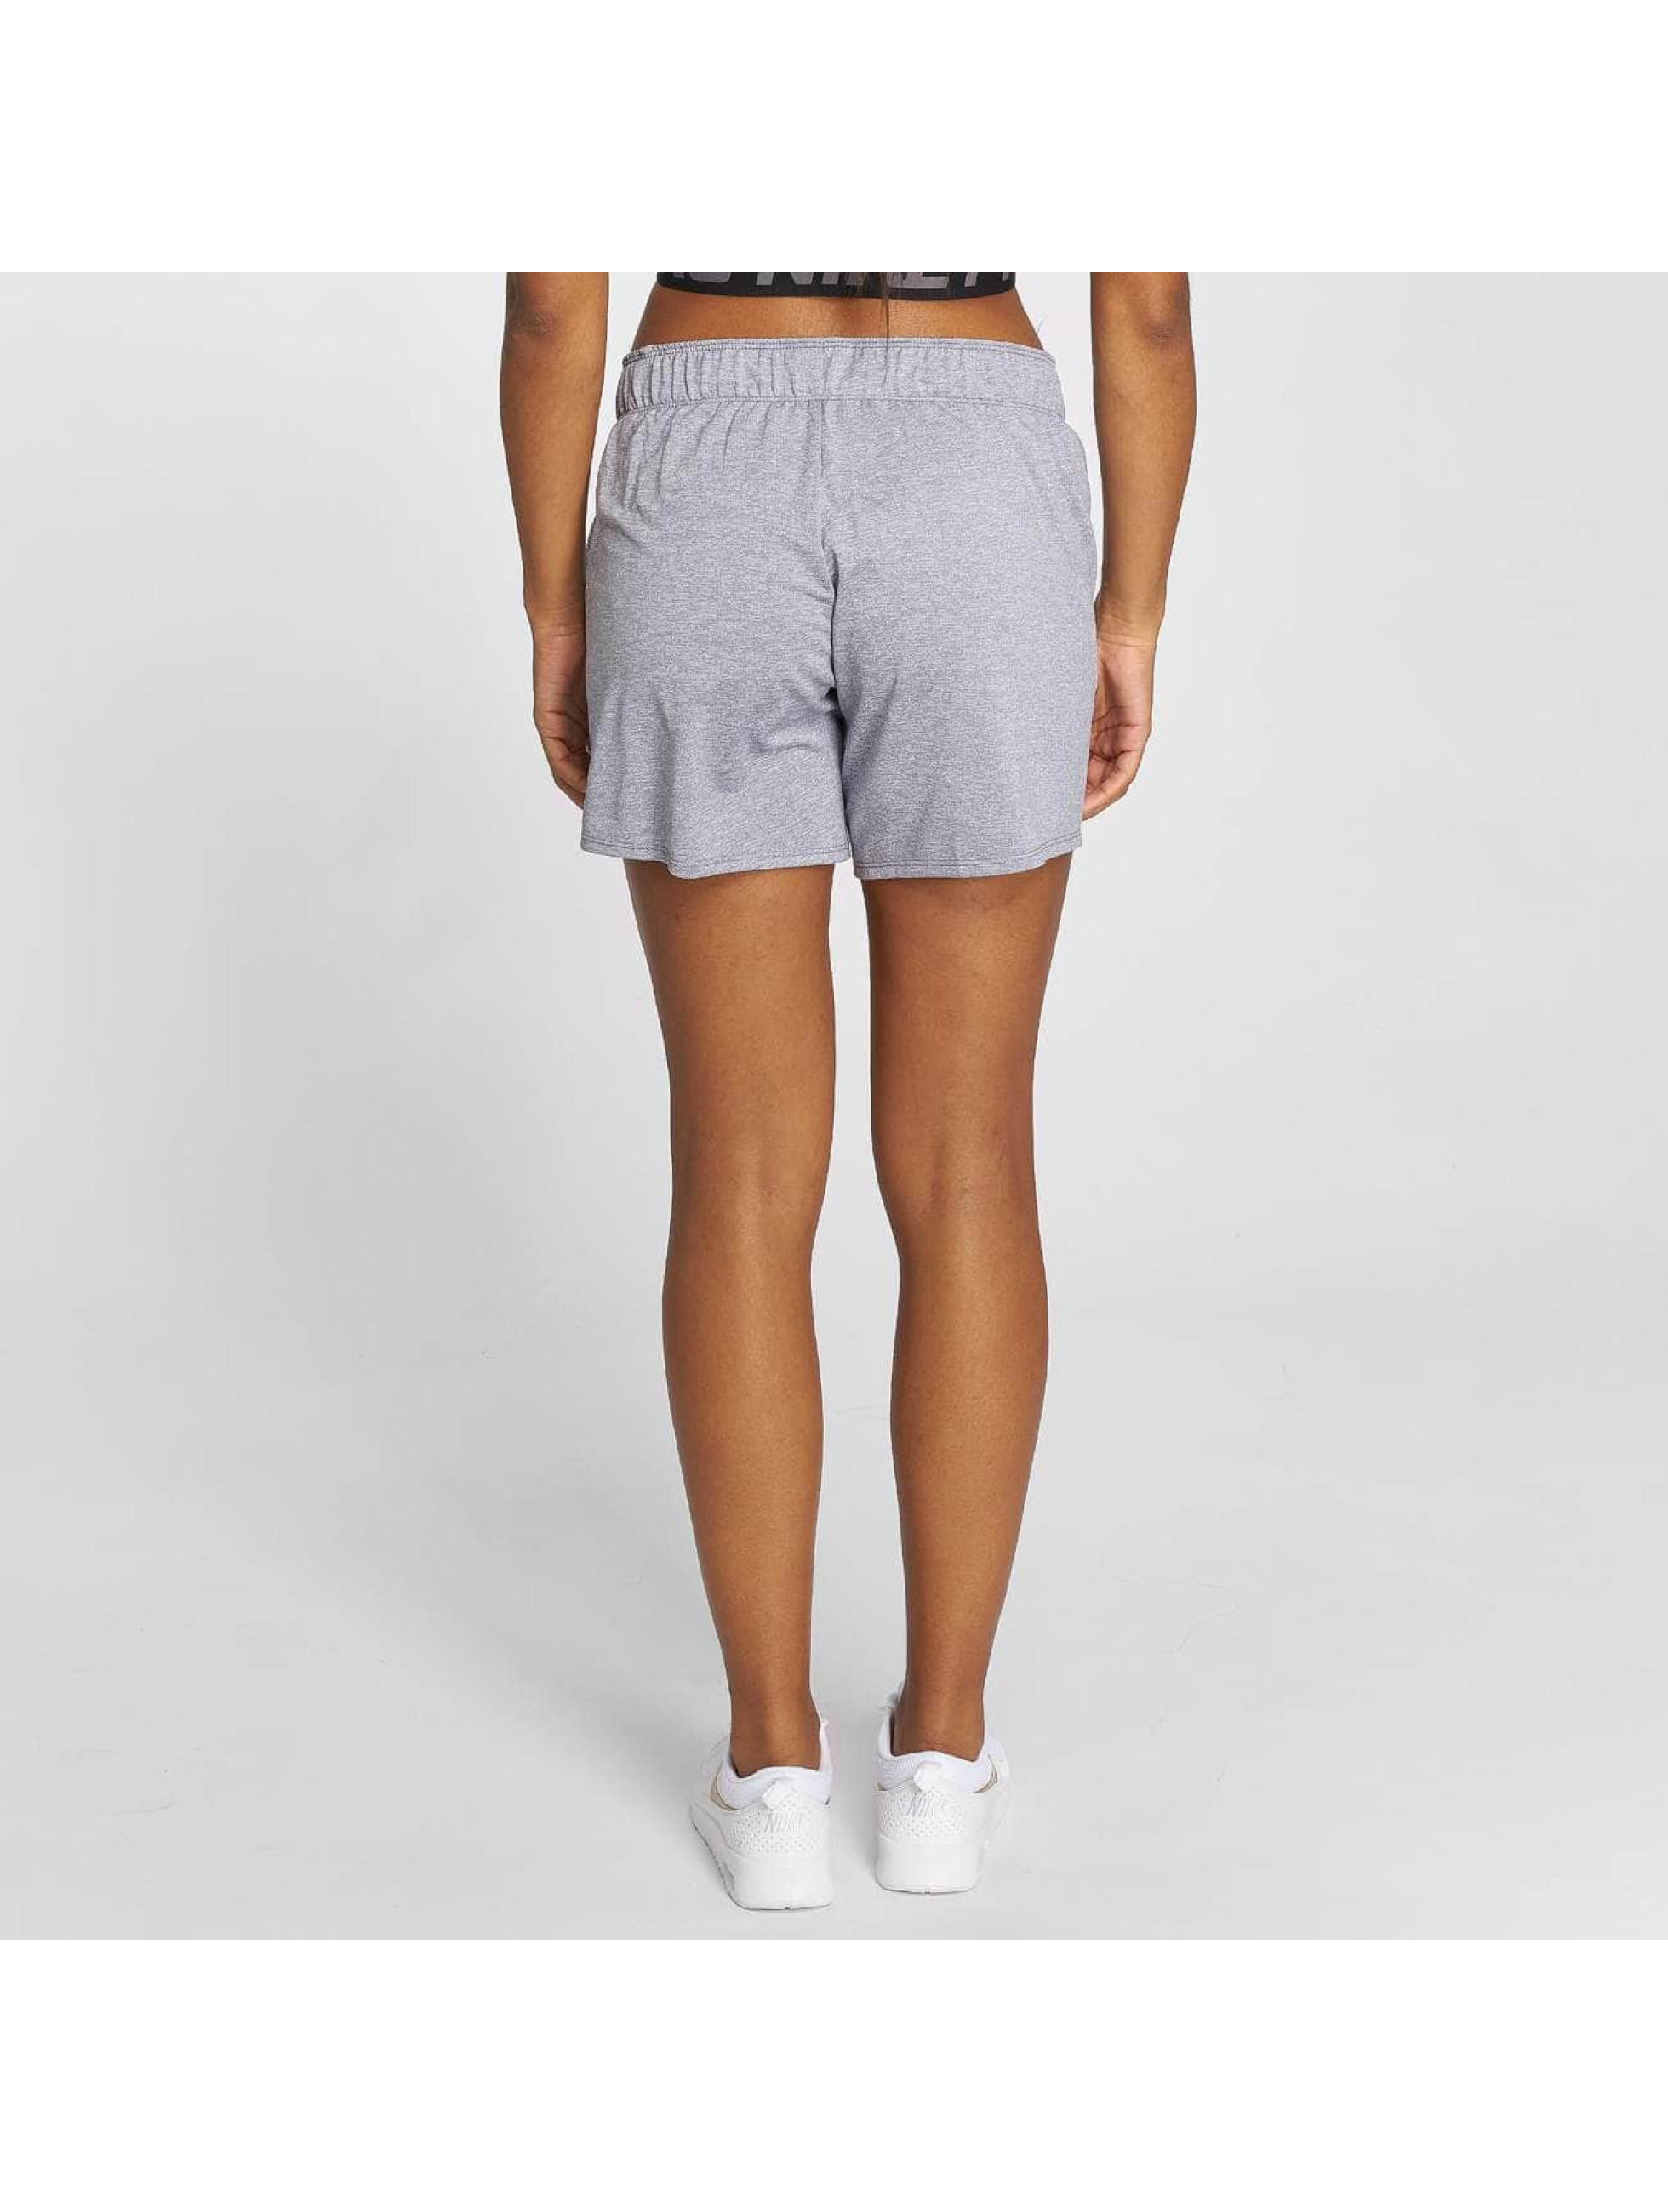 Nike Performance Short Training grey